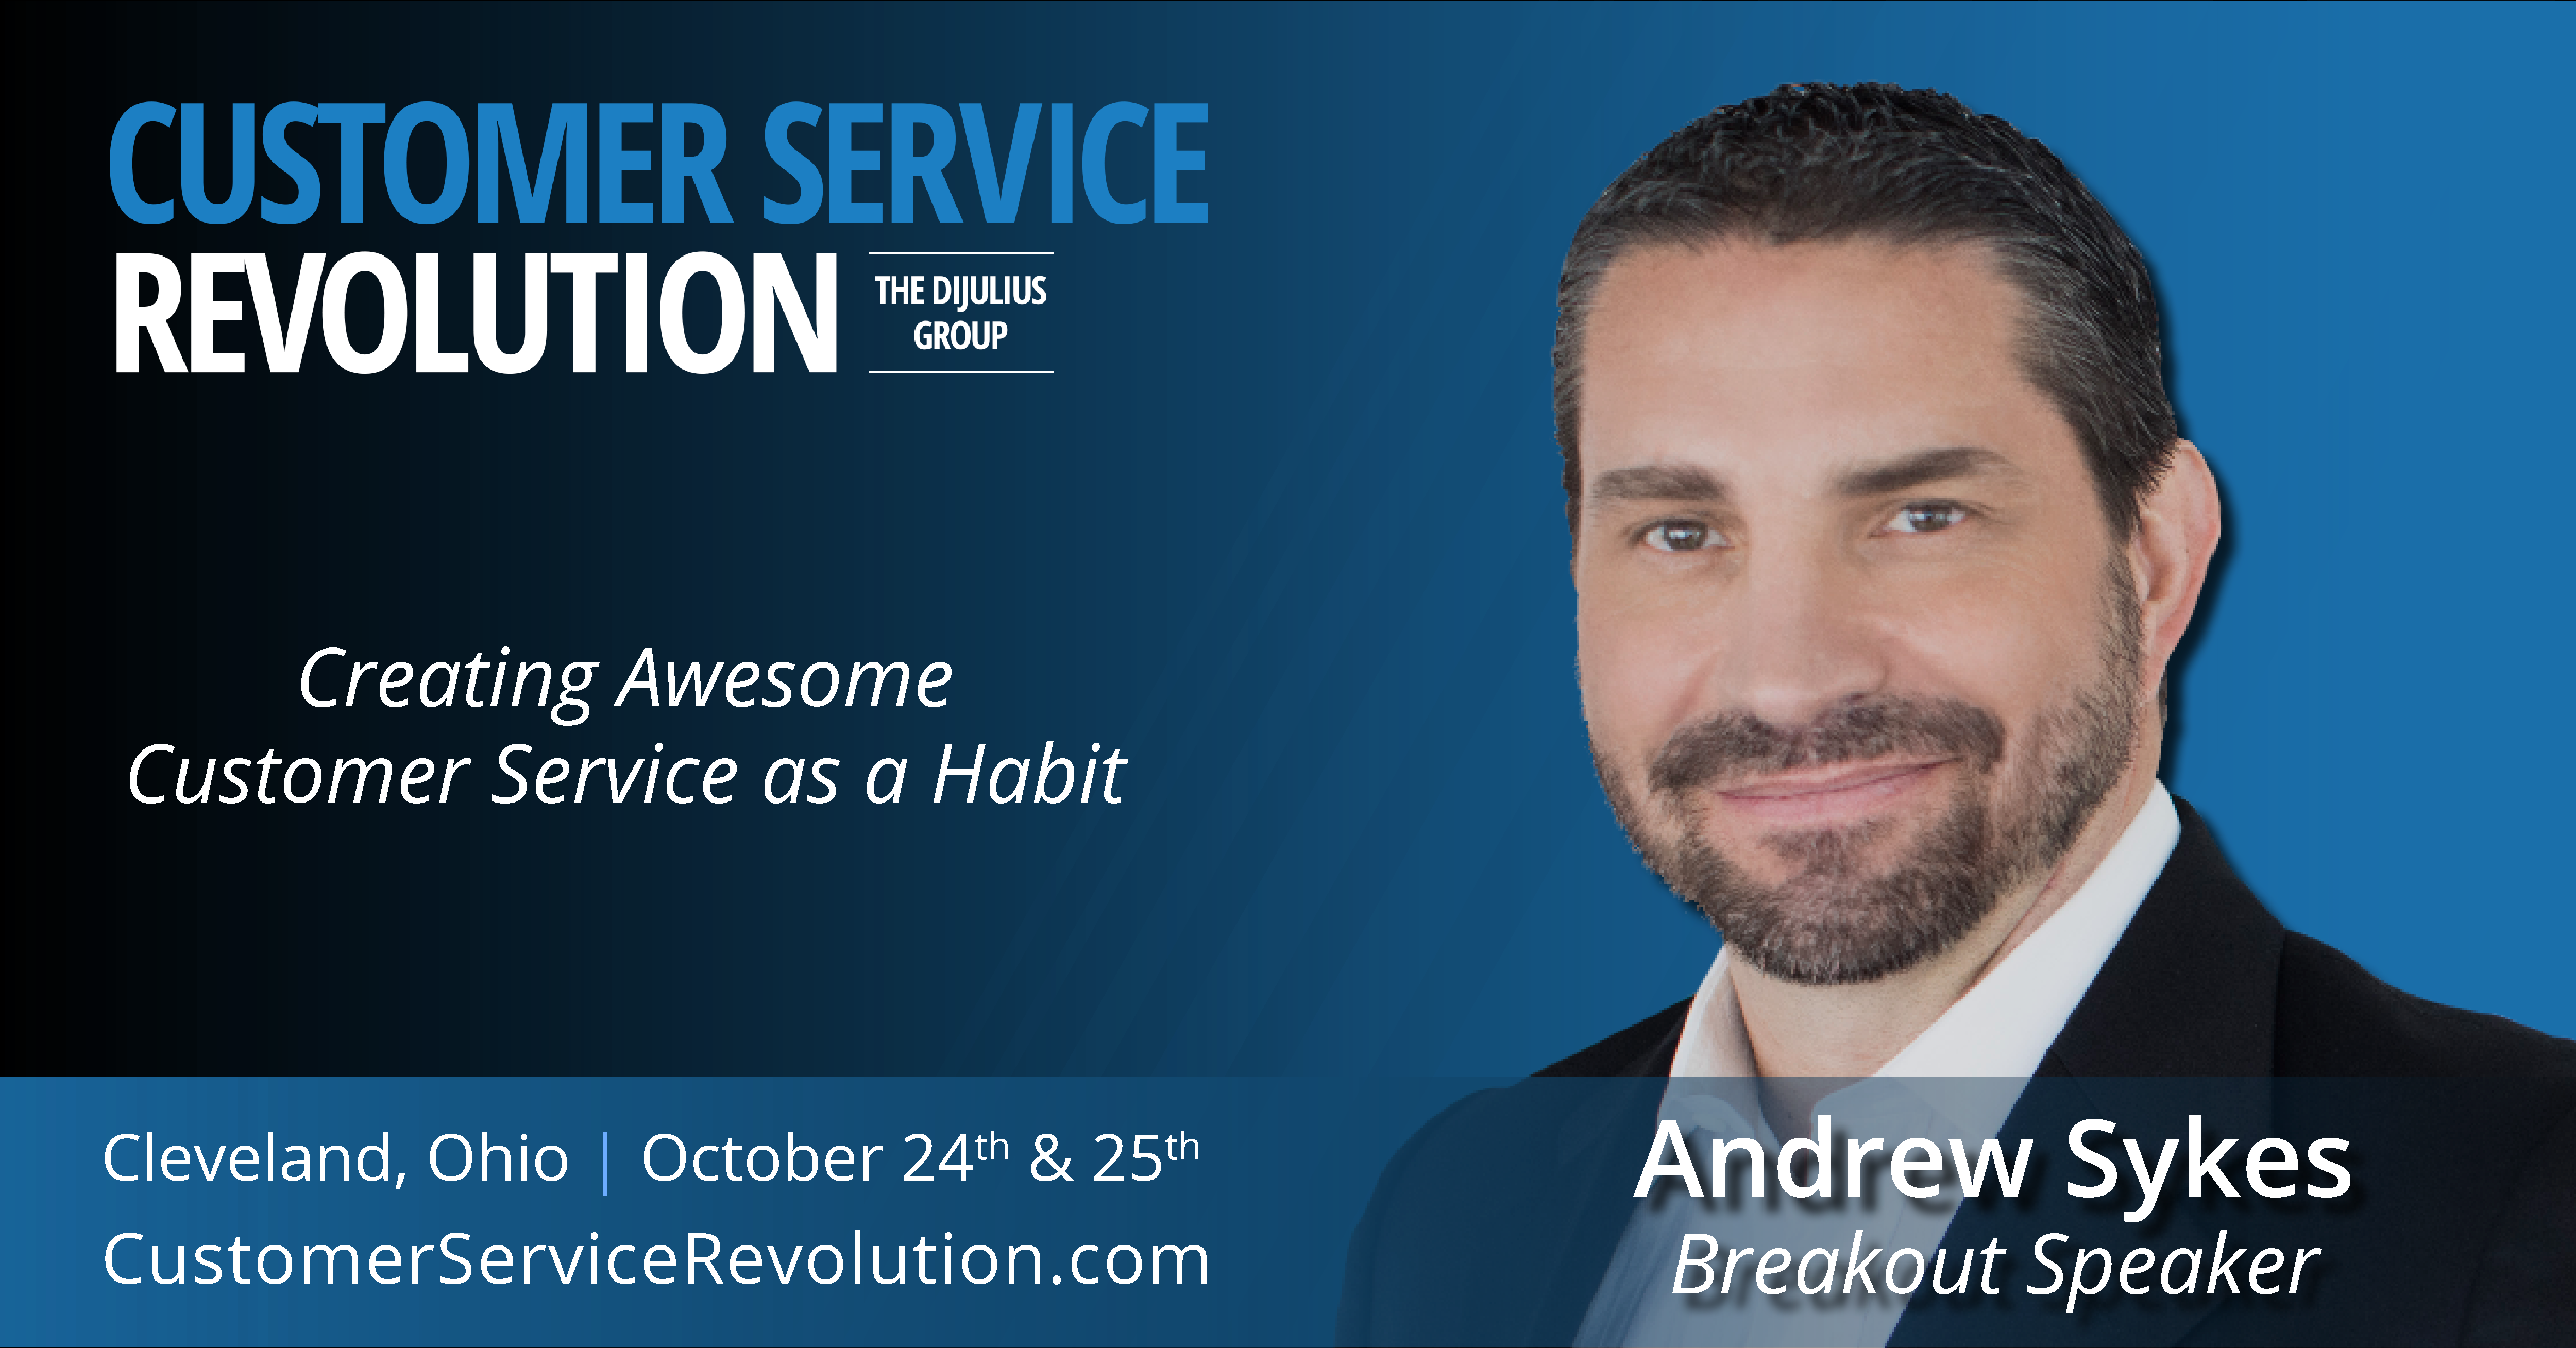 2018 Customer Service Revolution Conference Speaker Andrew Sykes on Creating Awesome Customer Service as a Habit